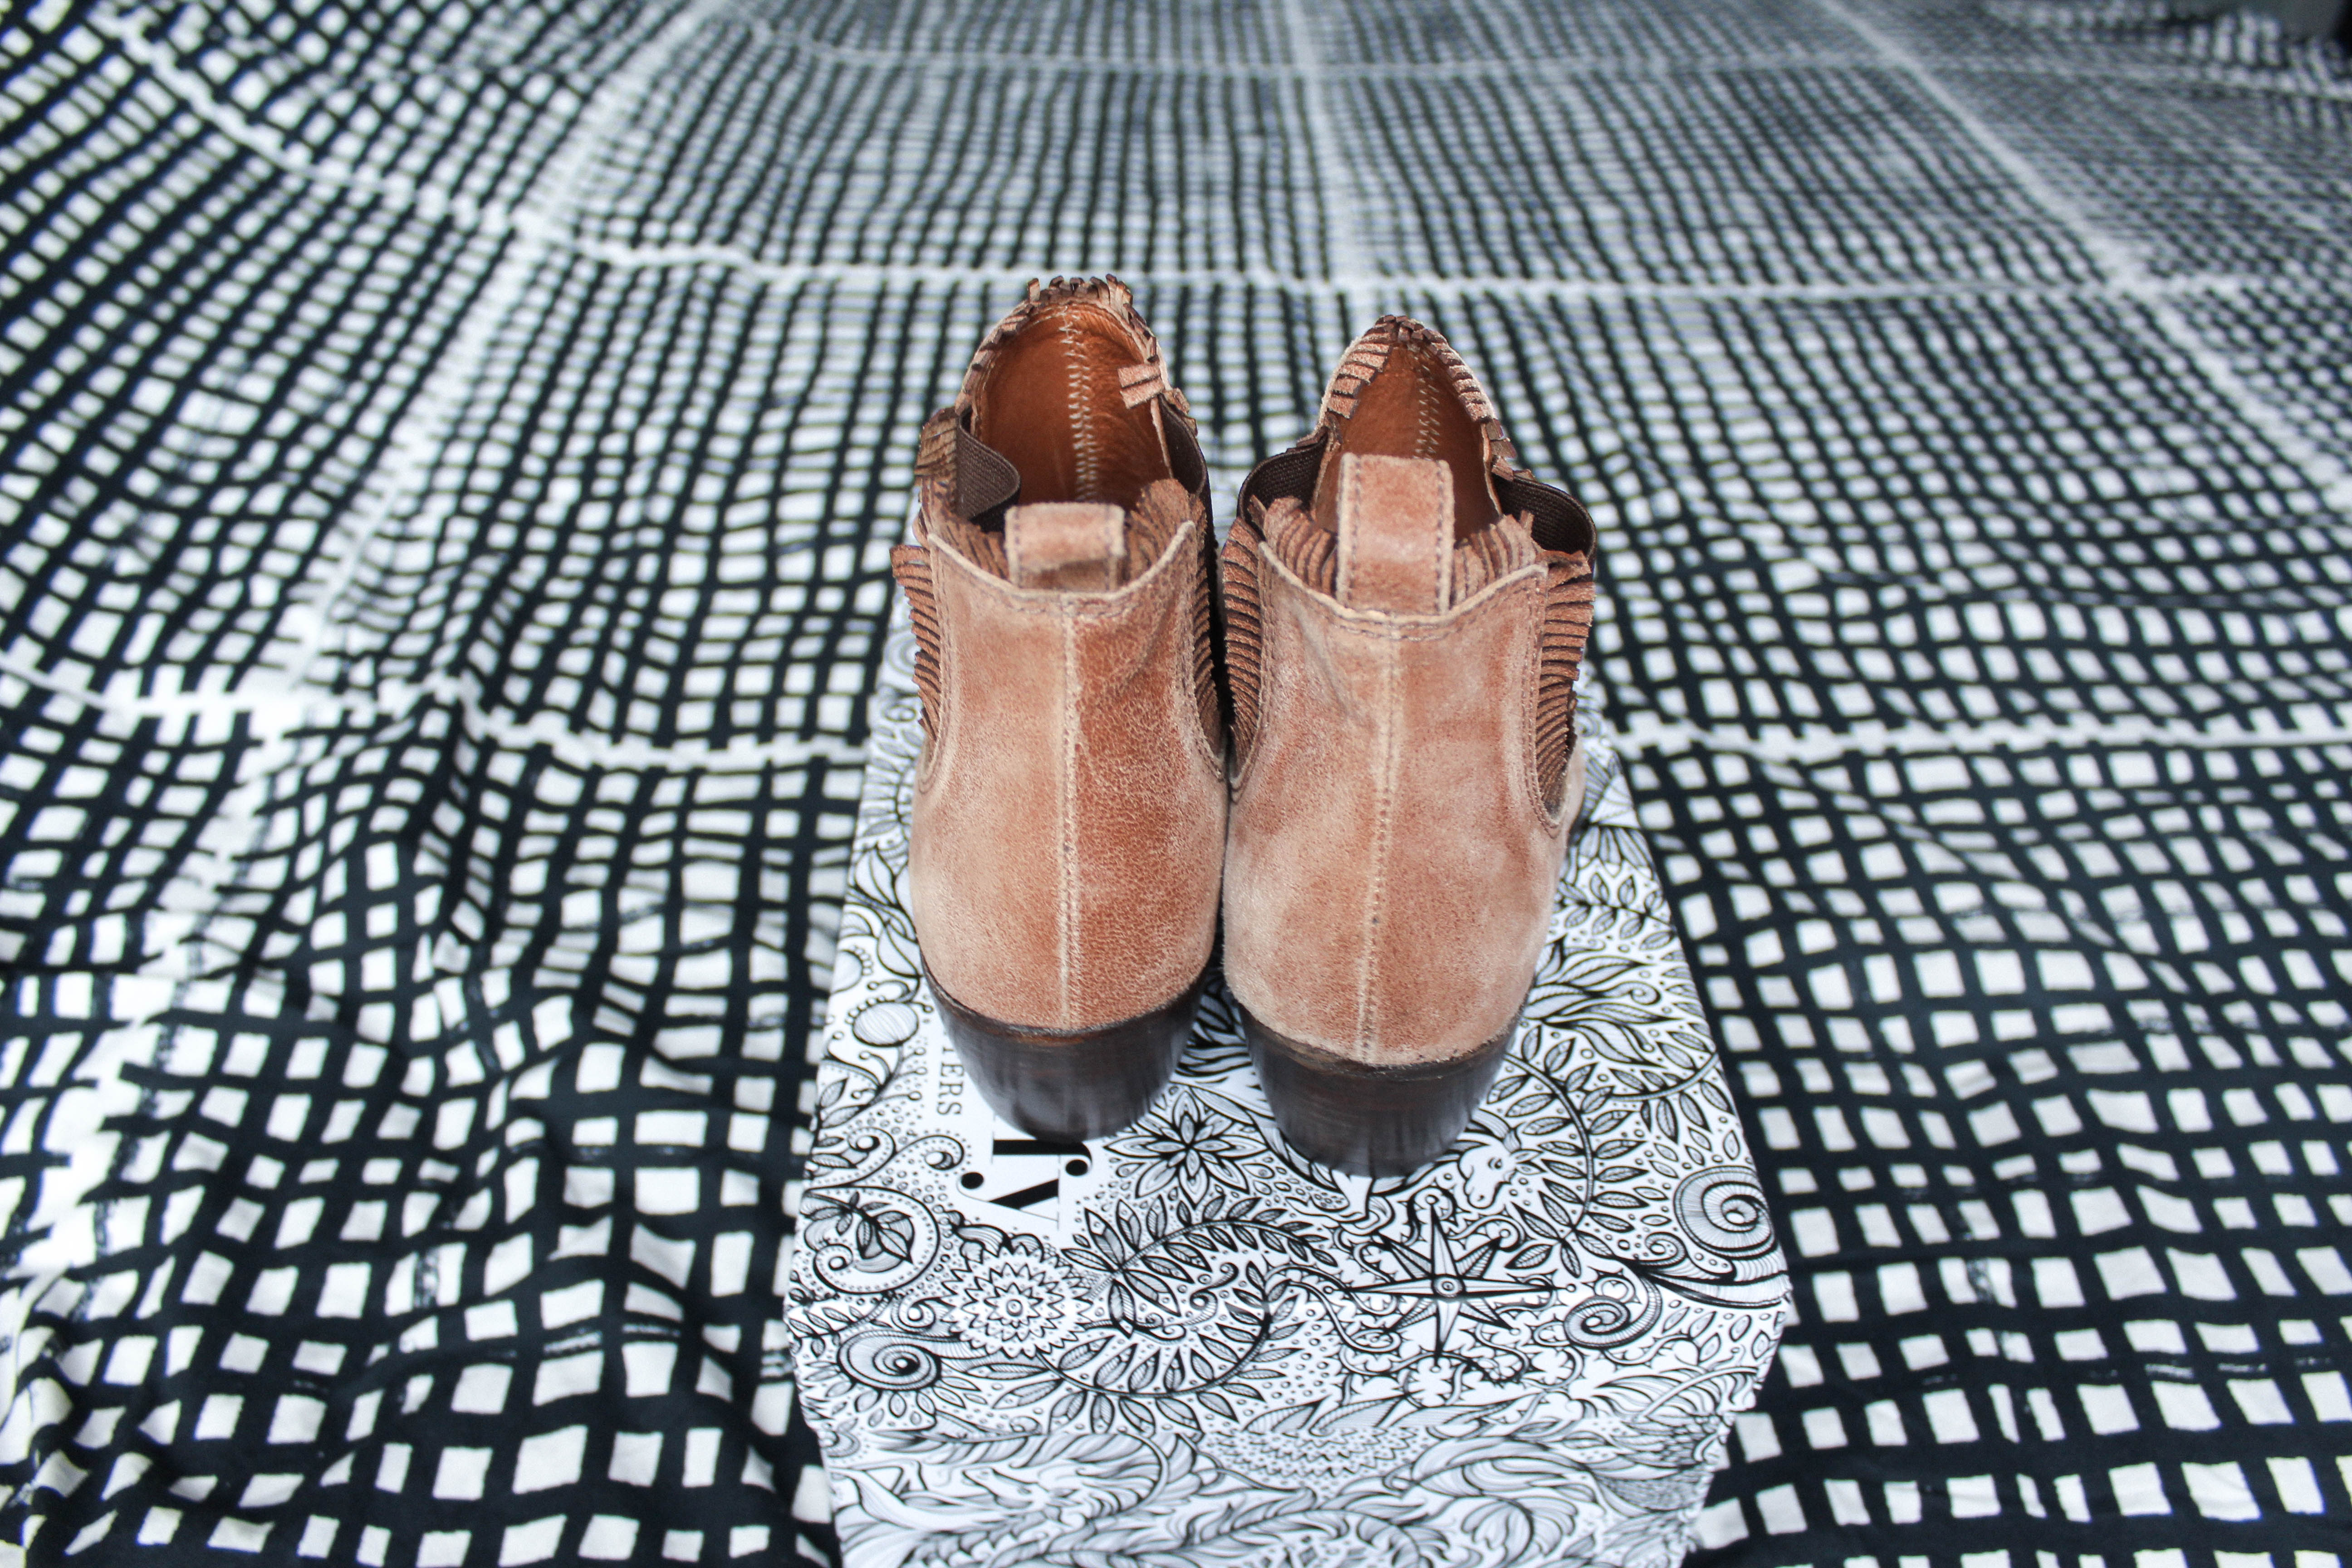 come-back-boots-ted-muffy-mademoisellevi-4